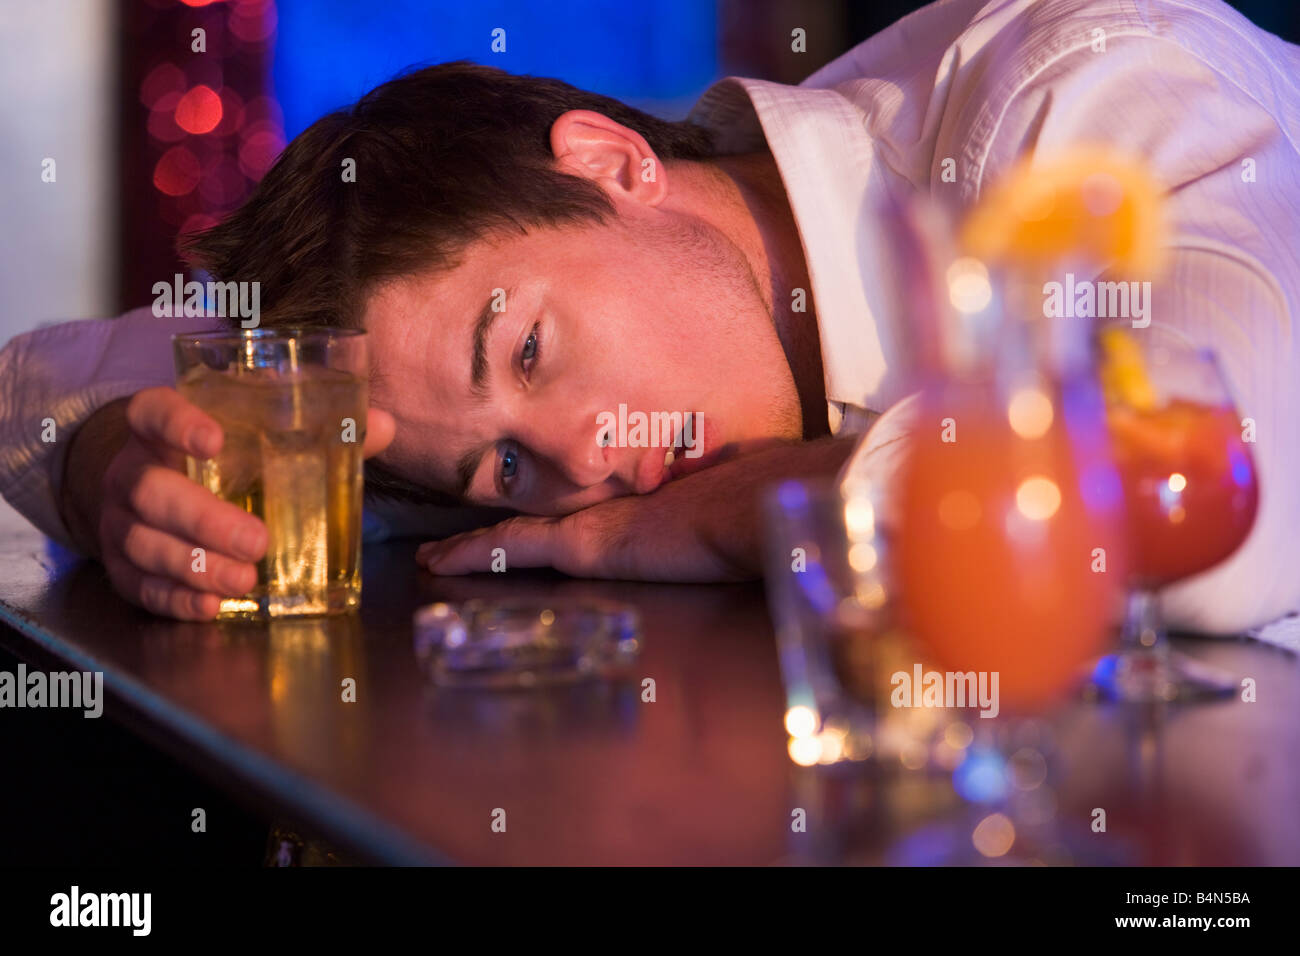 Drunk Alamy Bar Man Photo Out Passed Stock - Young In 20134222